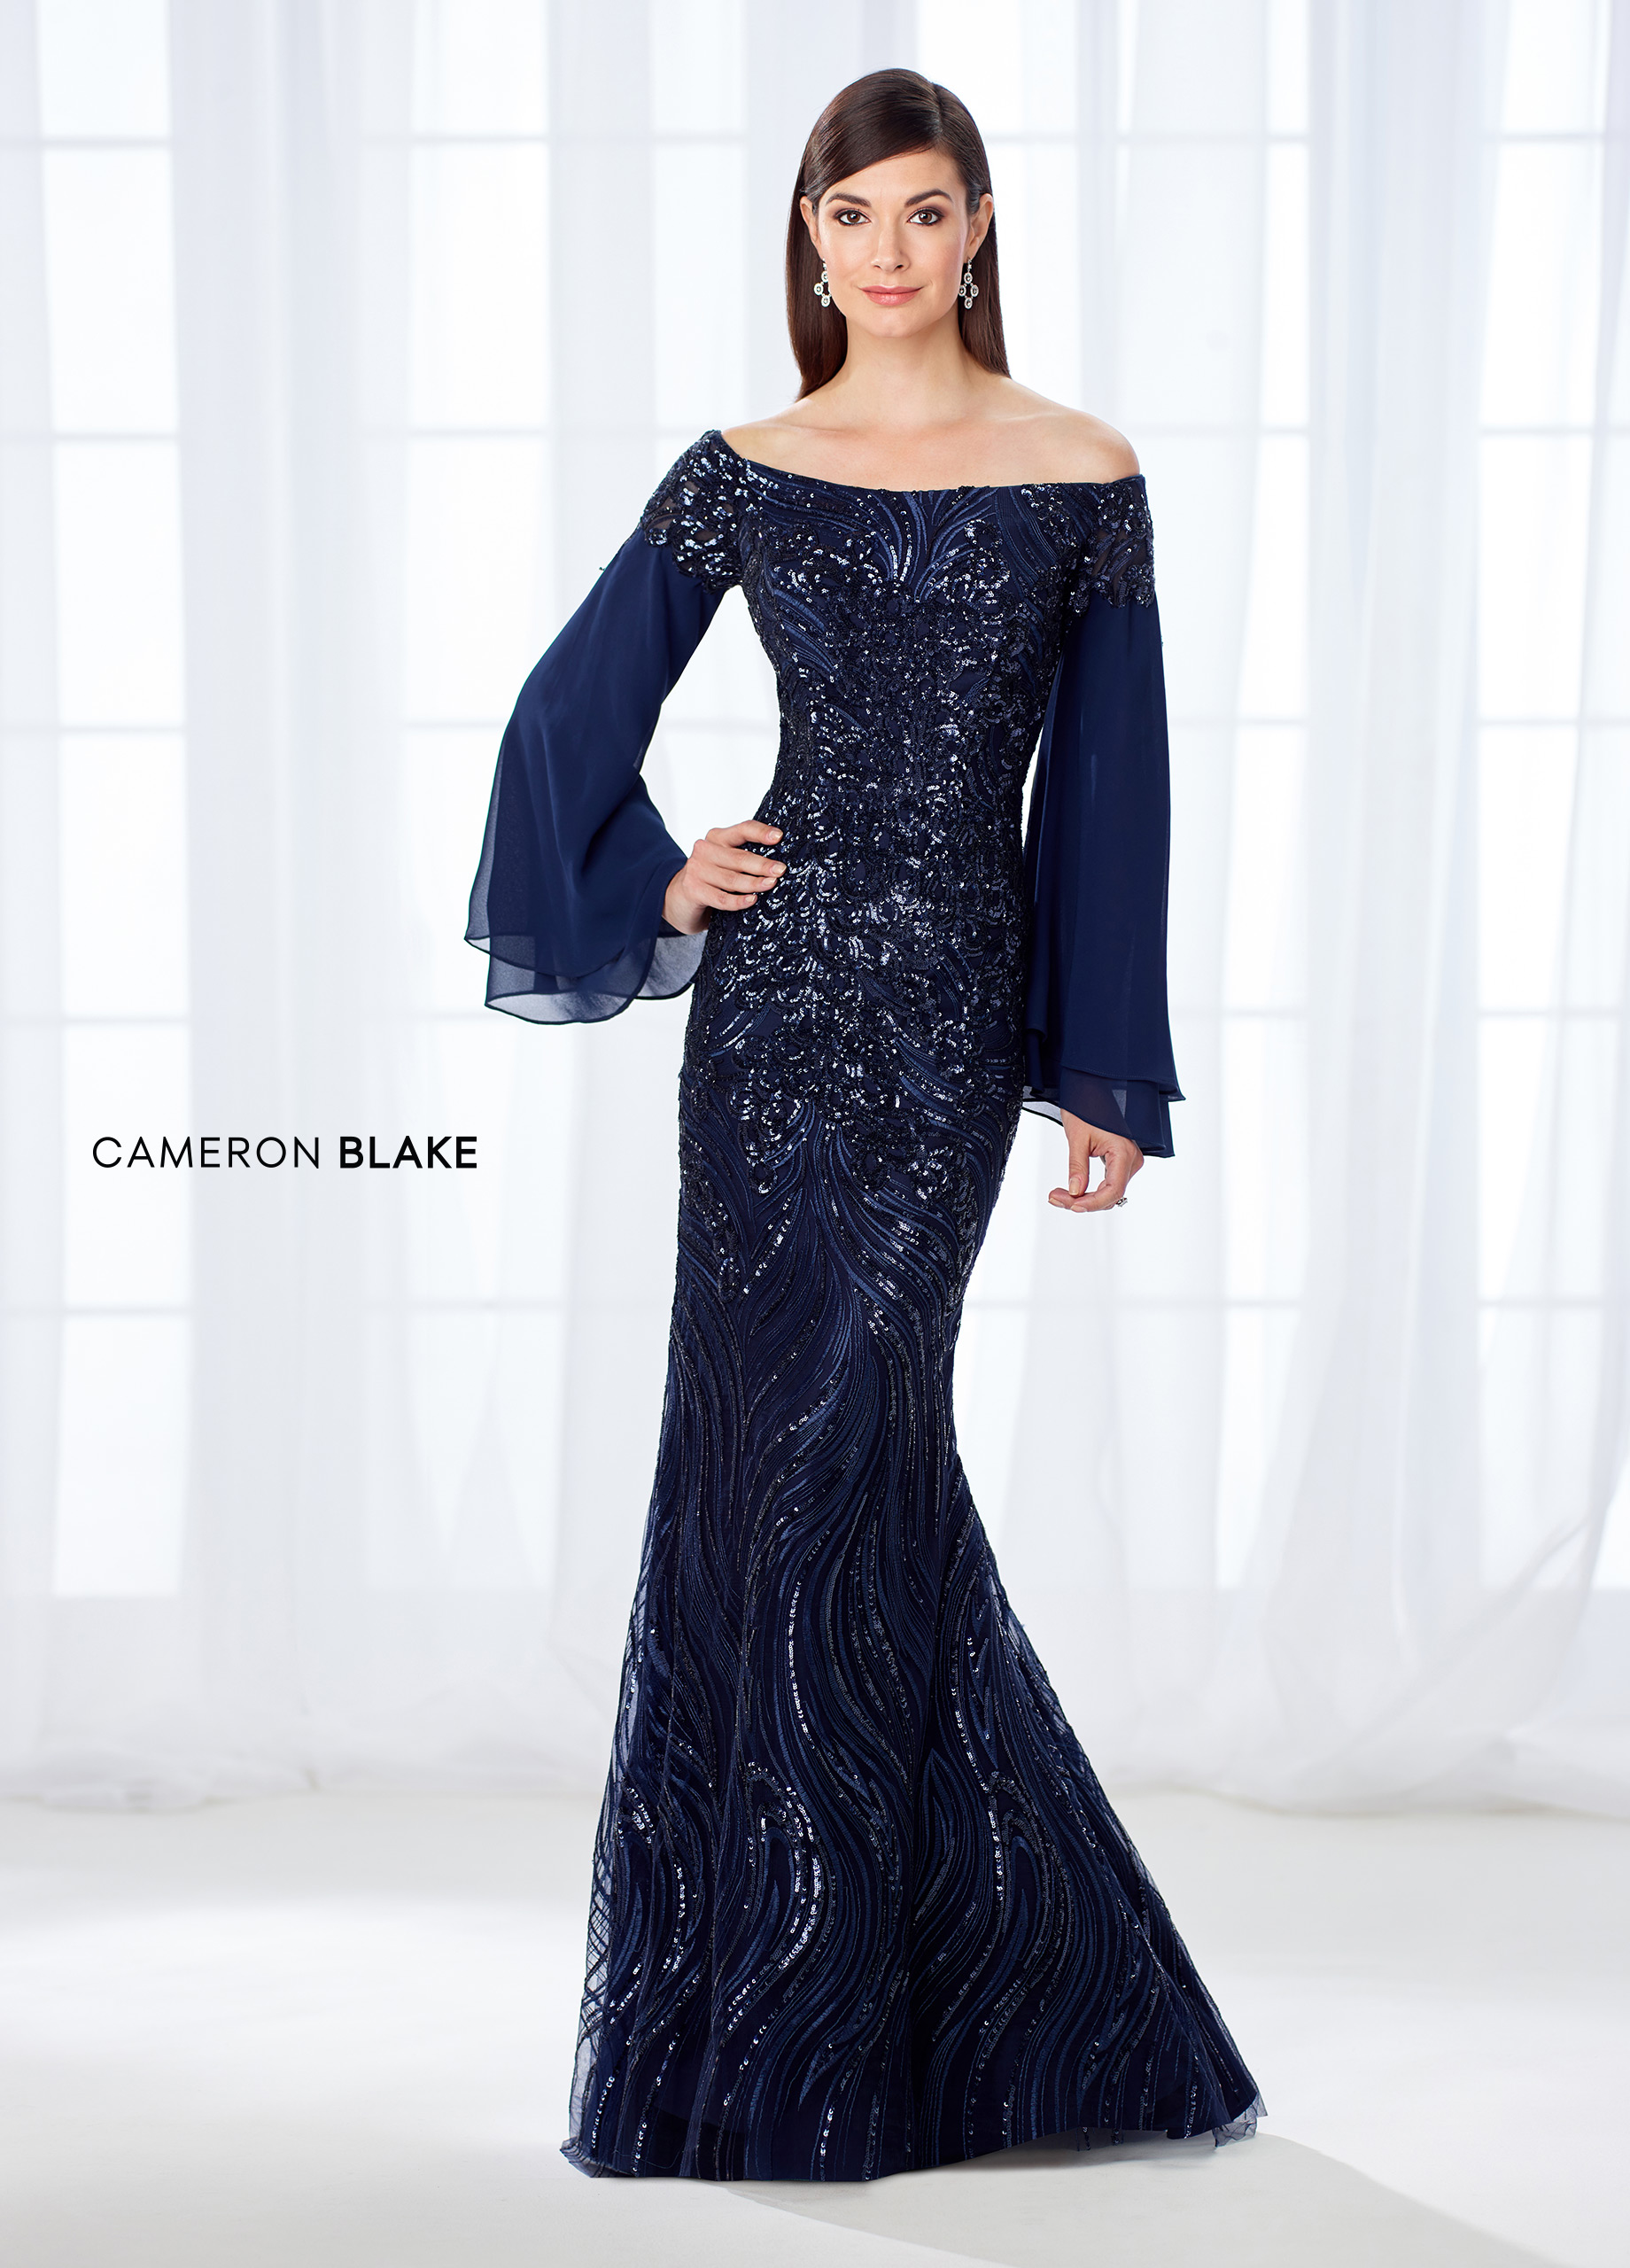 e84e7f20a812 A force to be reckoned with, this glamorous off-the-shoulder chiffon,  tulle, and intricately embroidered lace trumpet gown accented with heat set  stones and ...